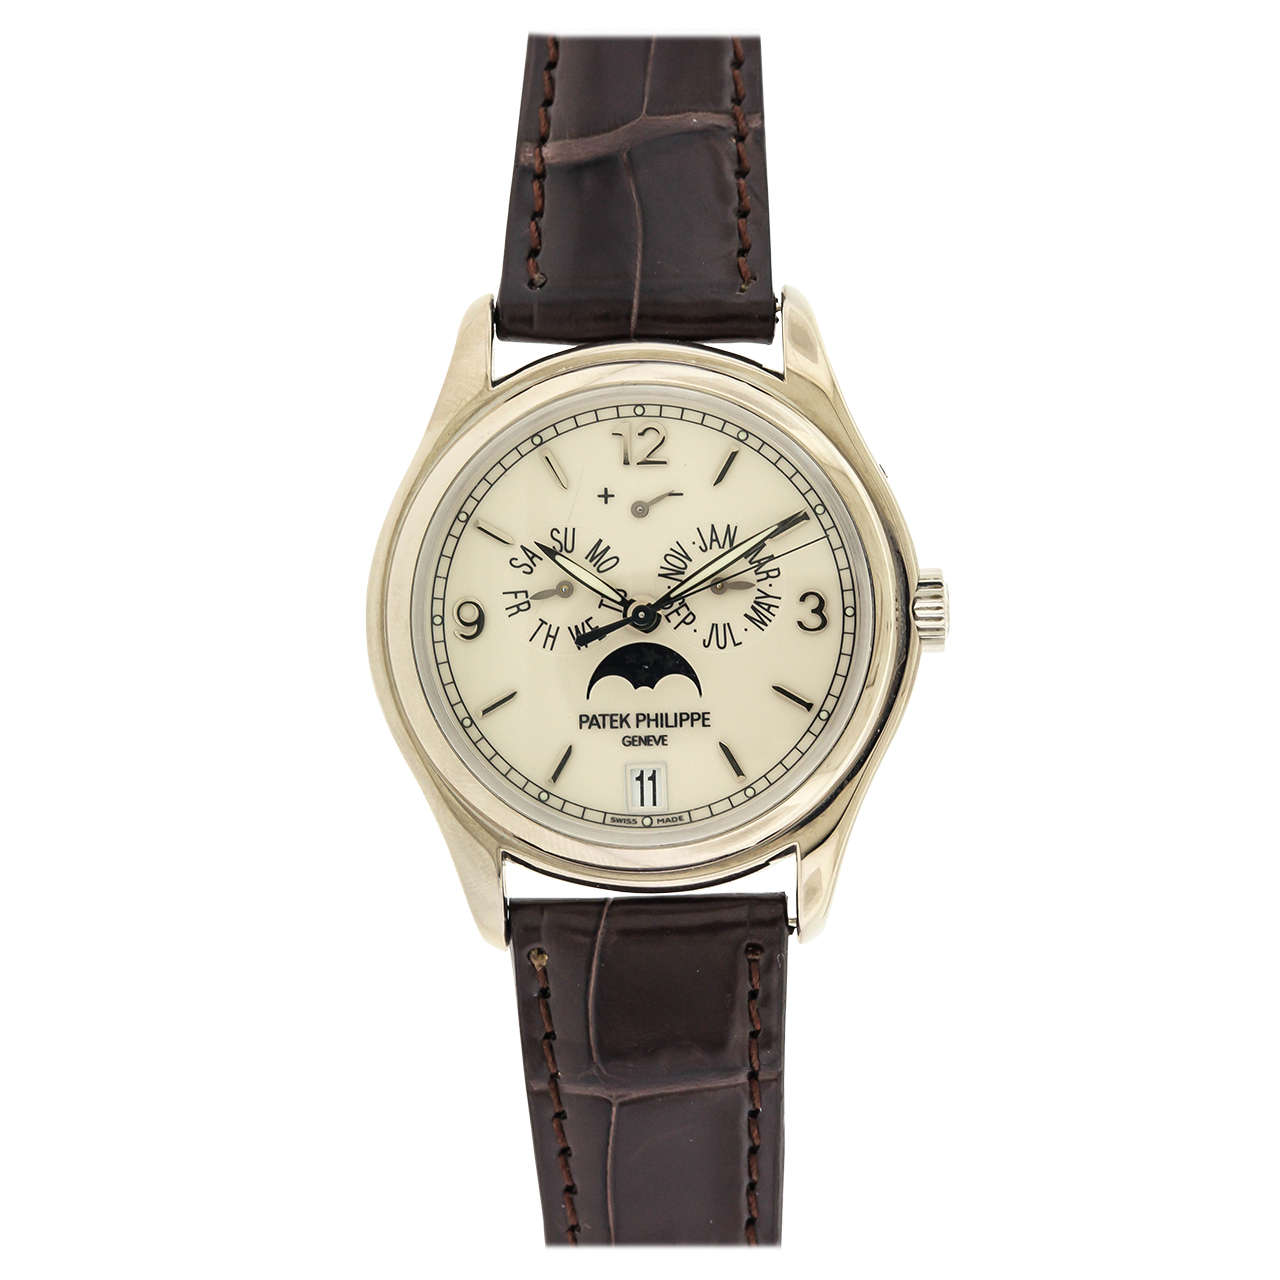 Patek Philippe White Gold Moonphase Calendar Wristwatch Ref 5146G